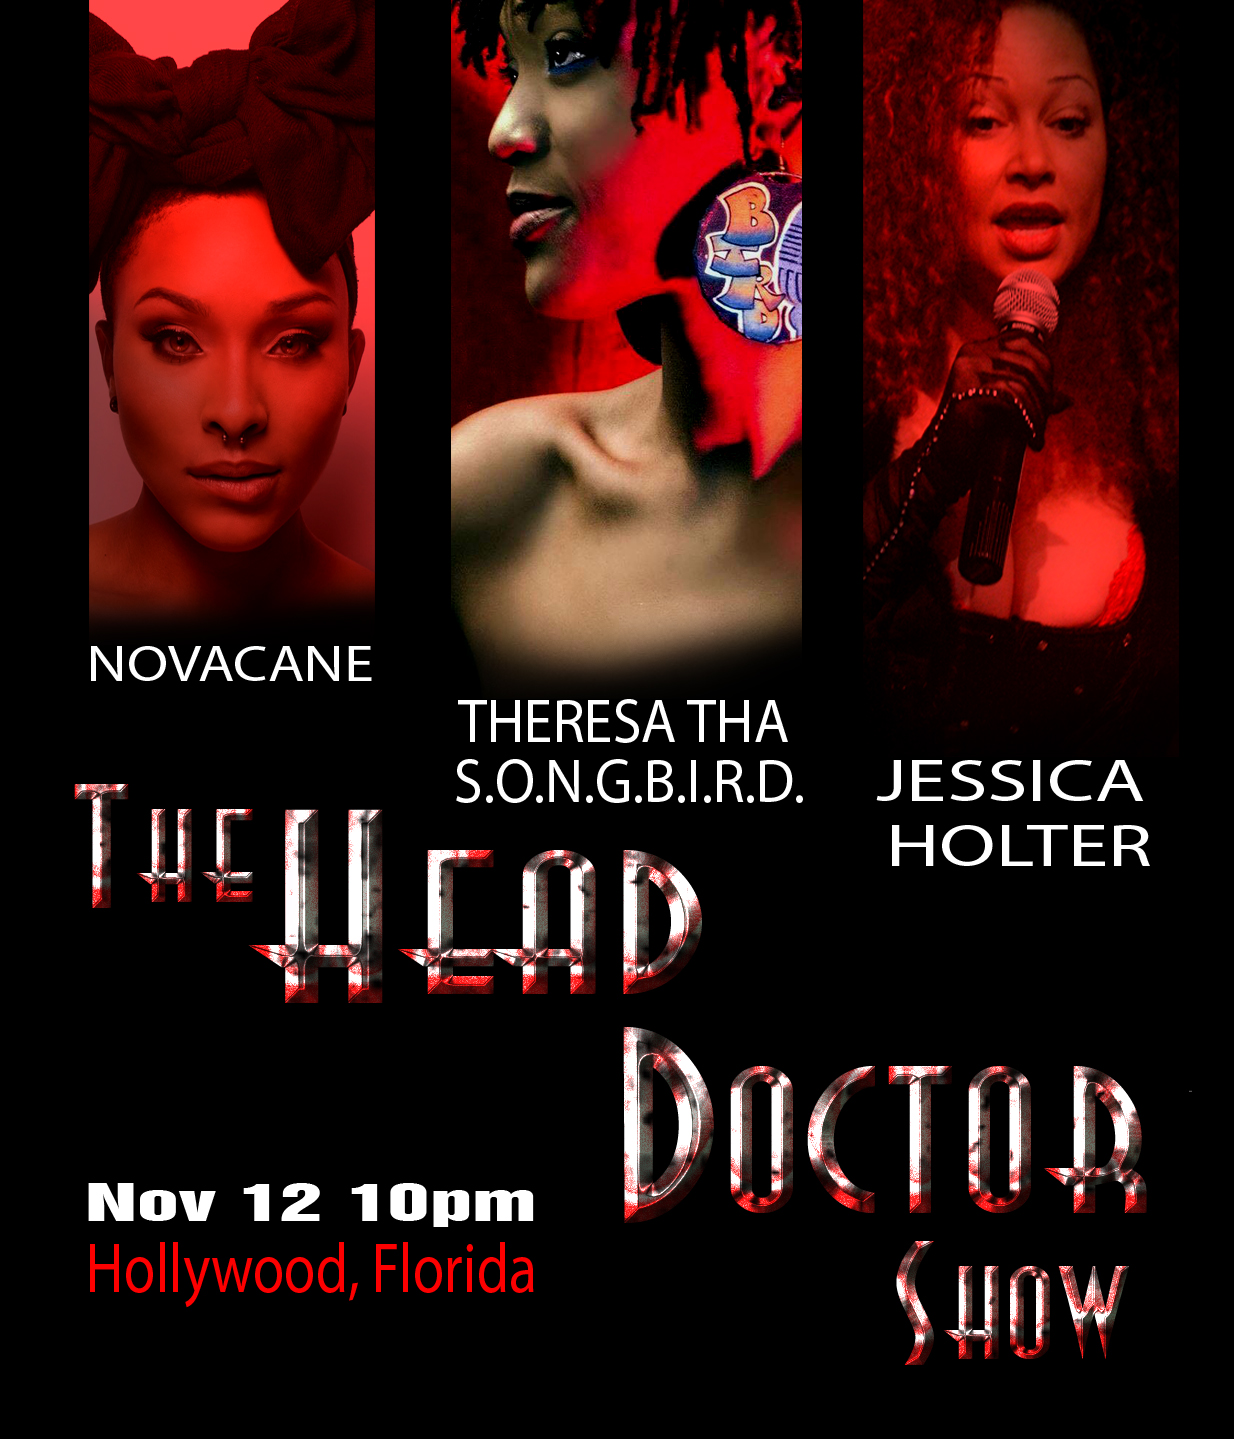 The Punany Poets The Head Doctor Show in Florida